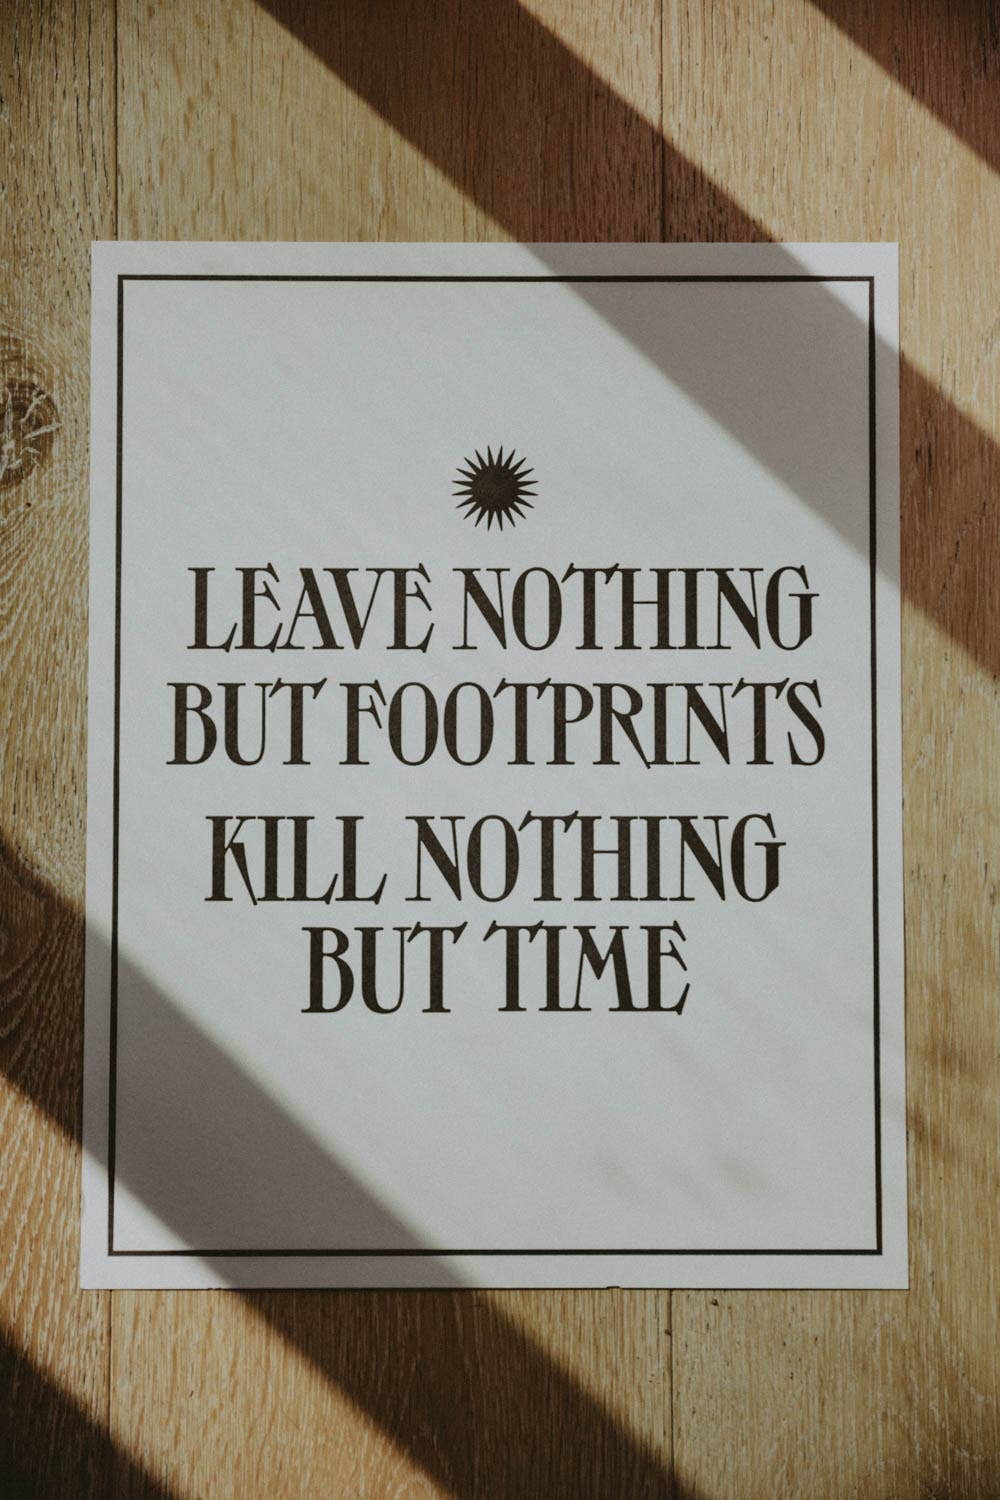 Letterpress: Leave Nothing But Footprints